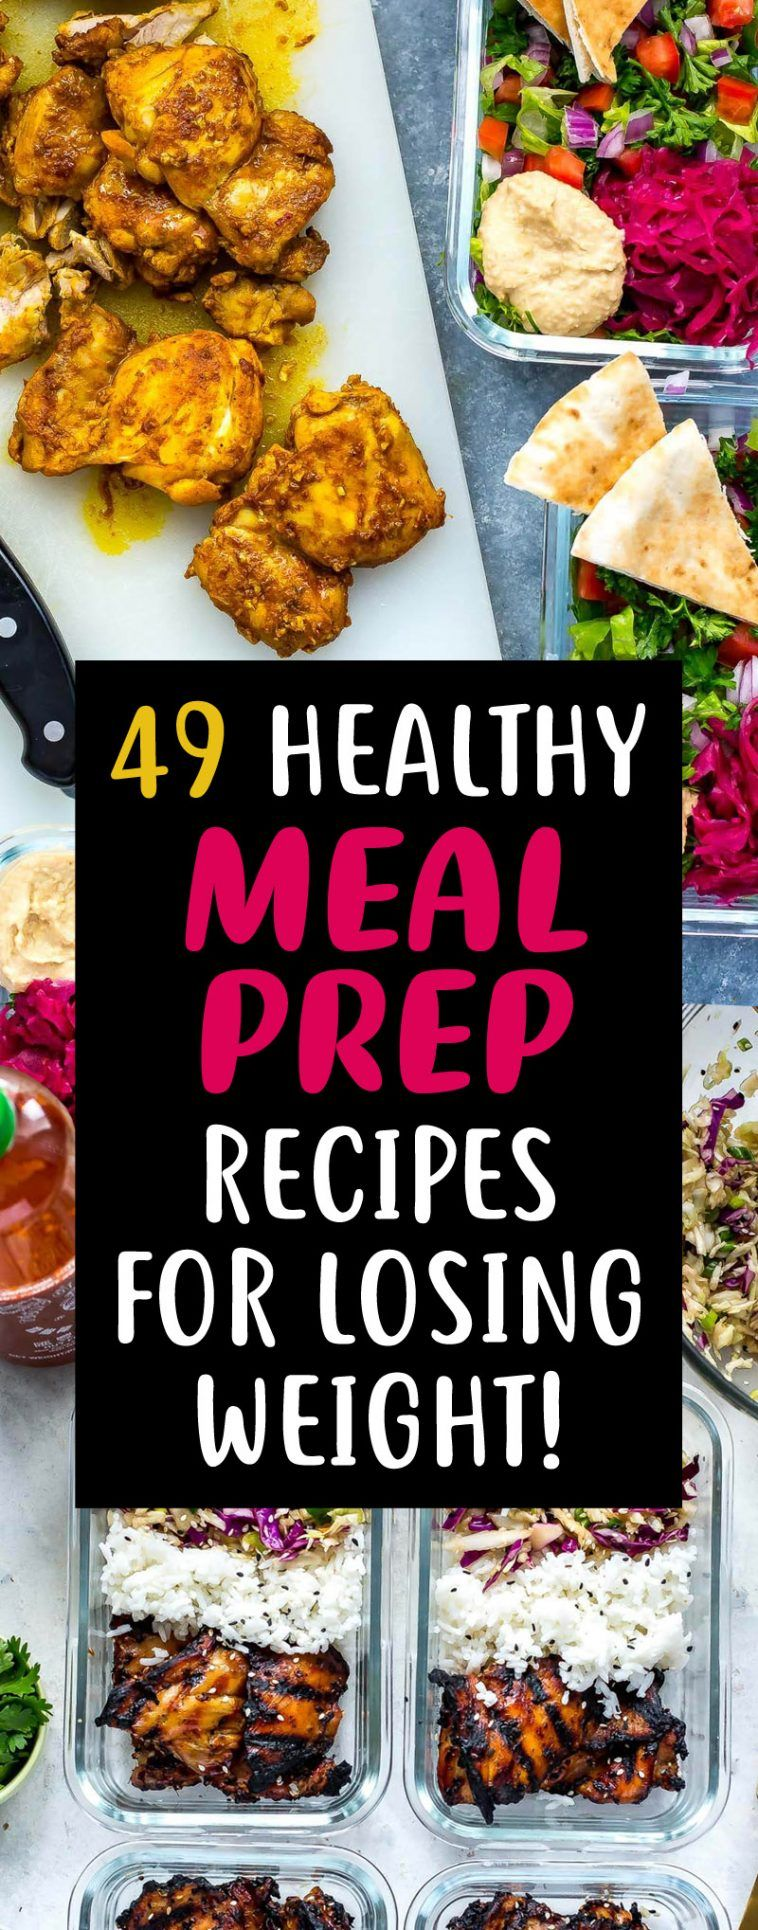 31 Meal Prep Recipes Perfect For Quick Easy Meals To Lose Fat Fast! images